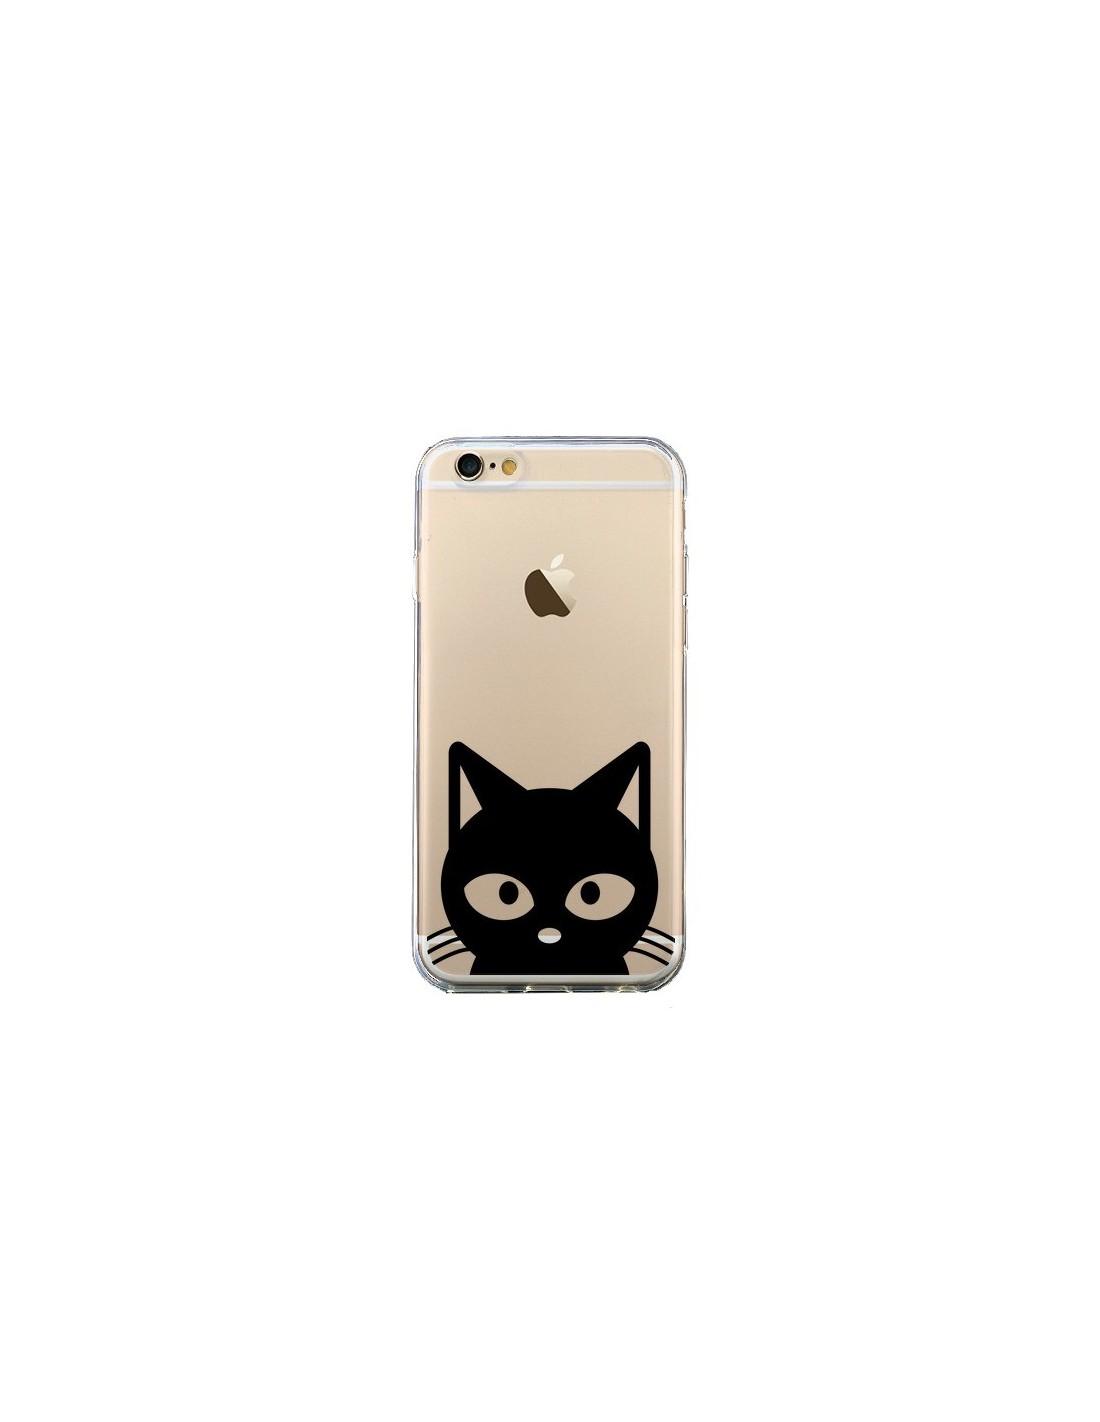 coque iphone 6 avec chat